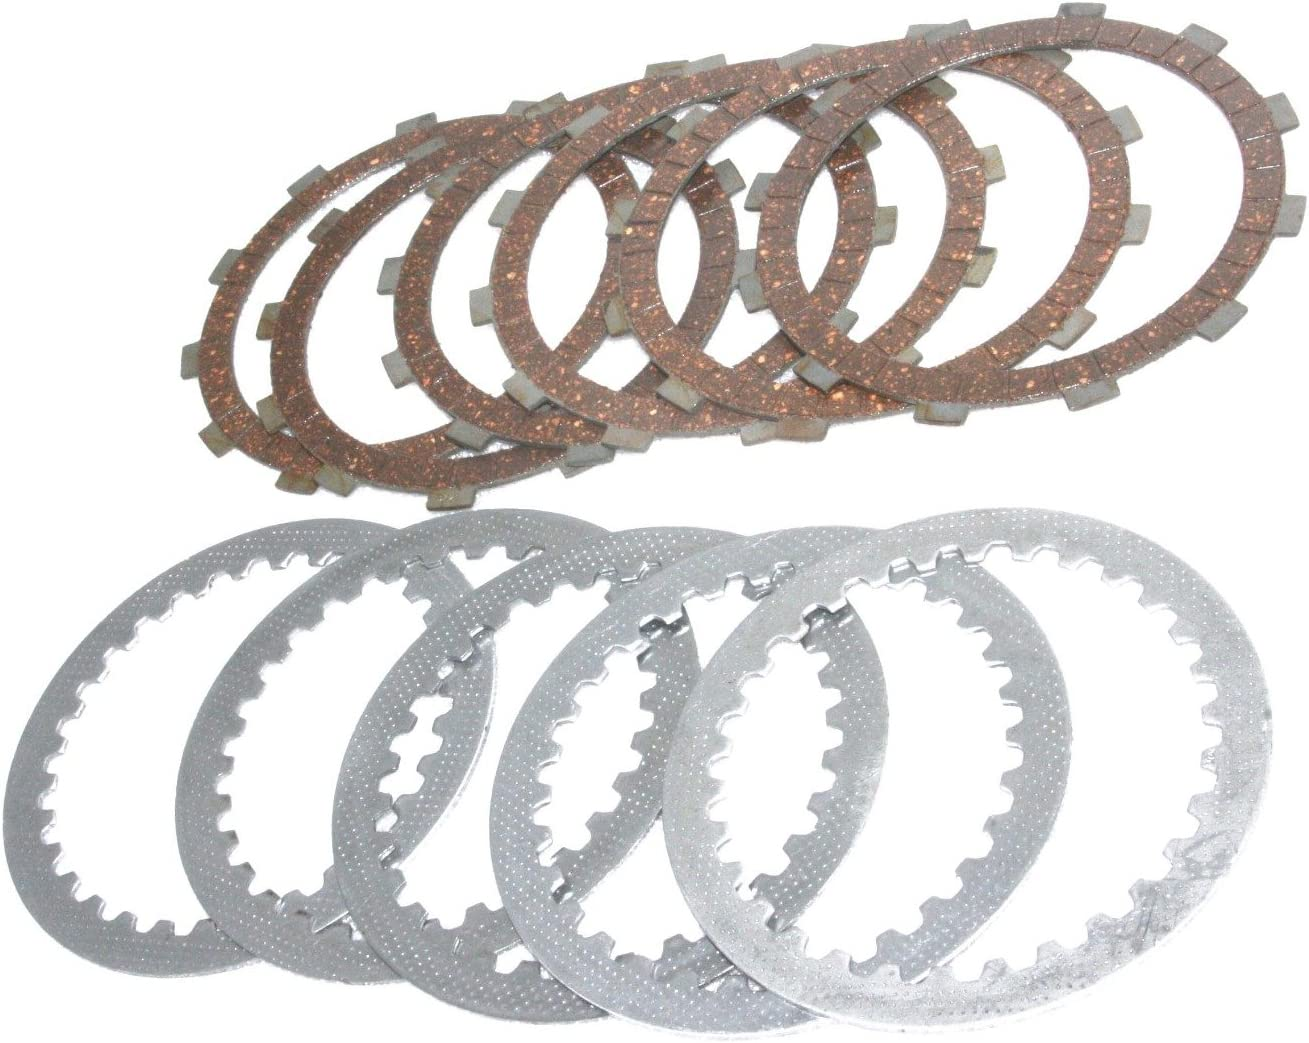 Enfield County Royal Enfield UCE 350 Genuine Clutch Plate Kit-Tbts # 597459